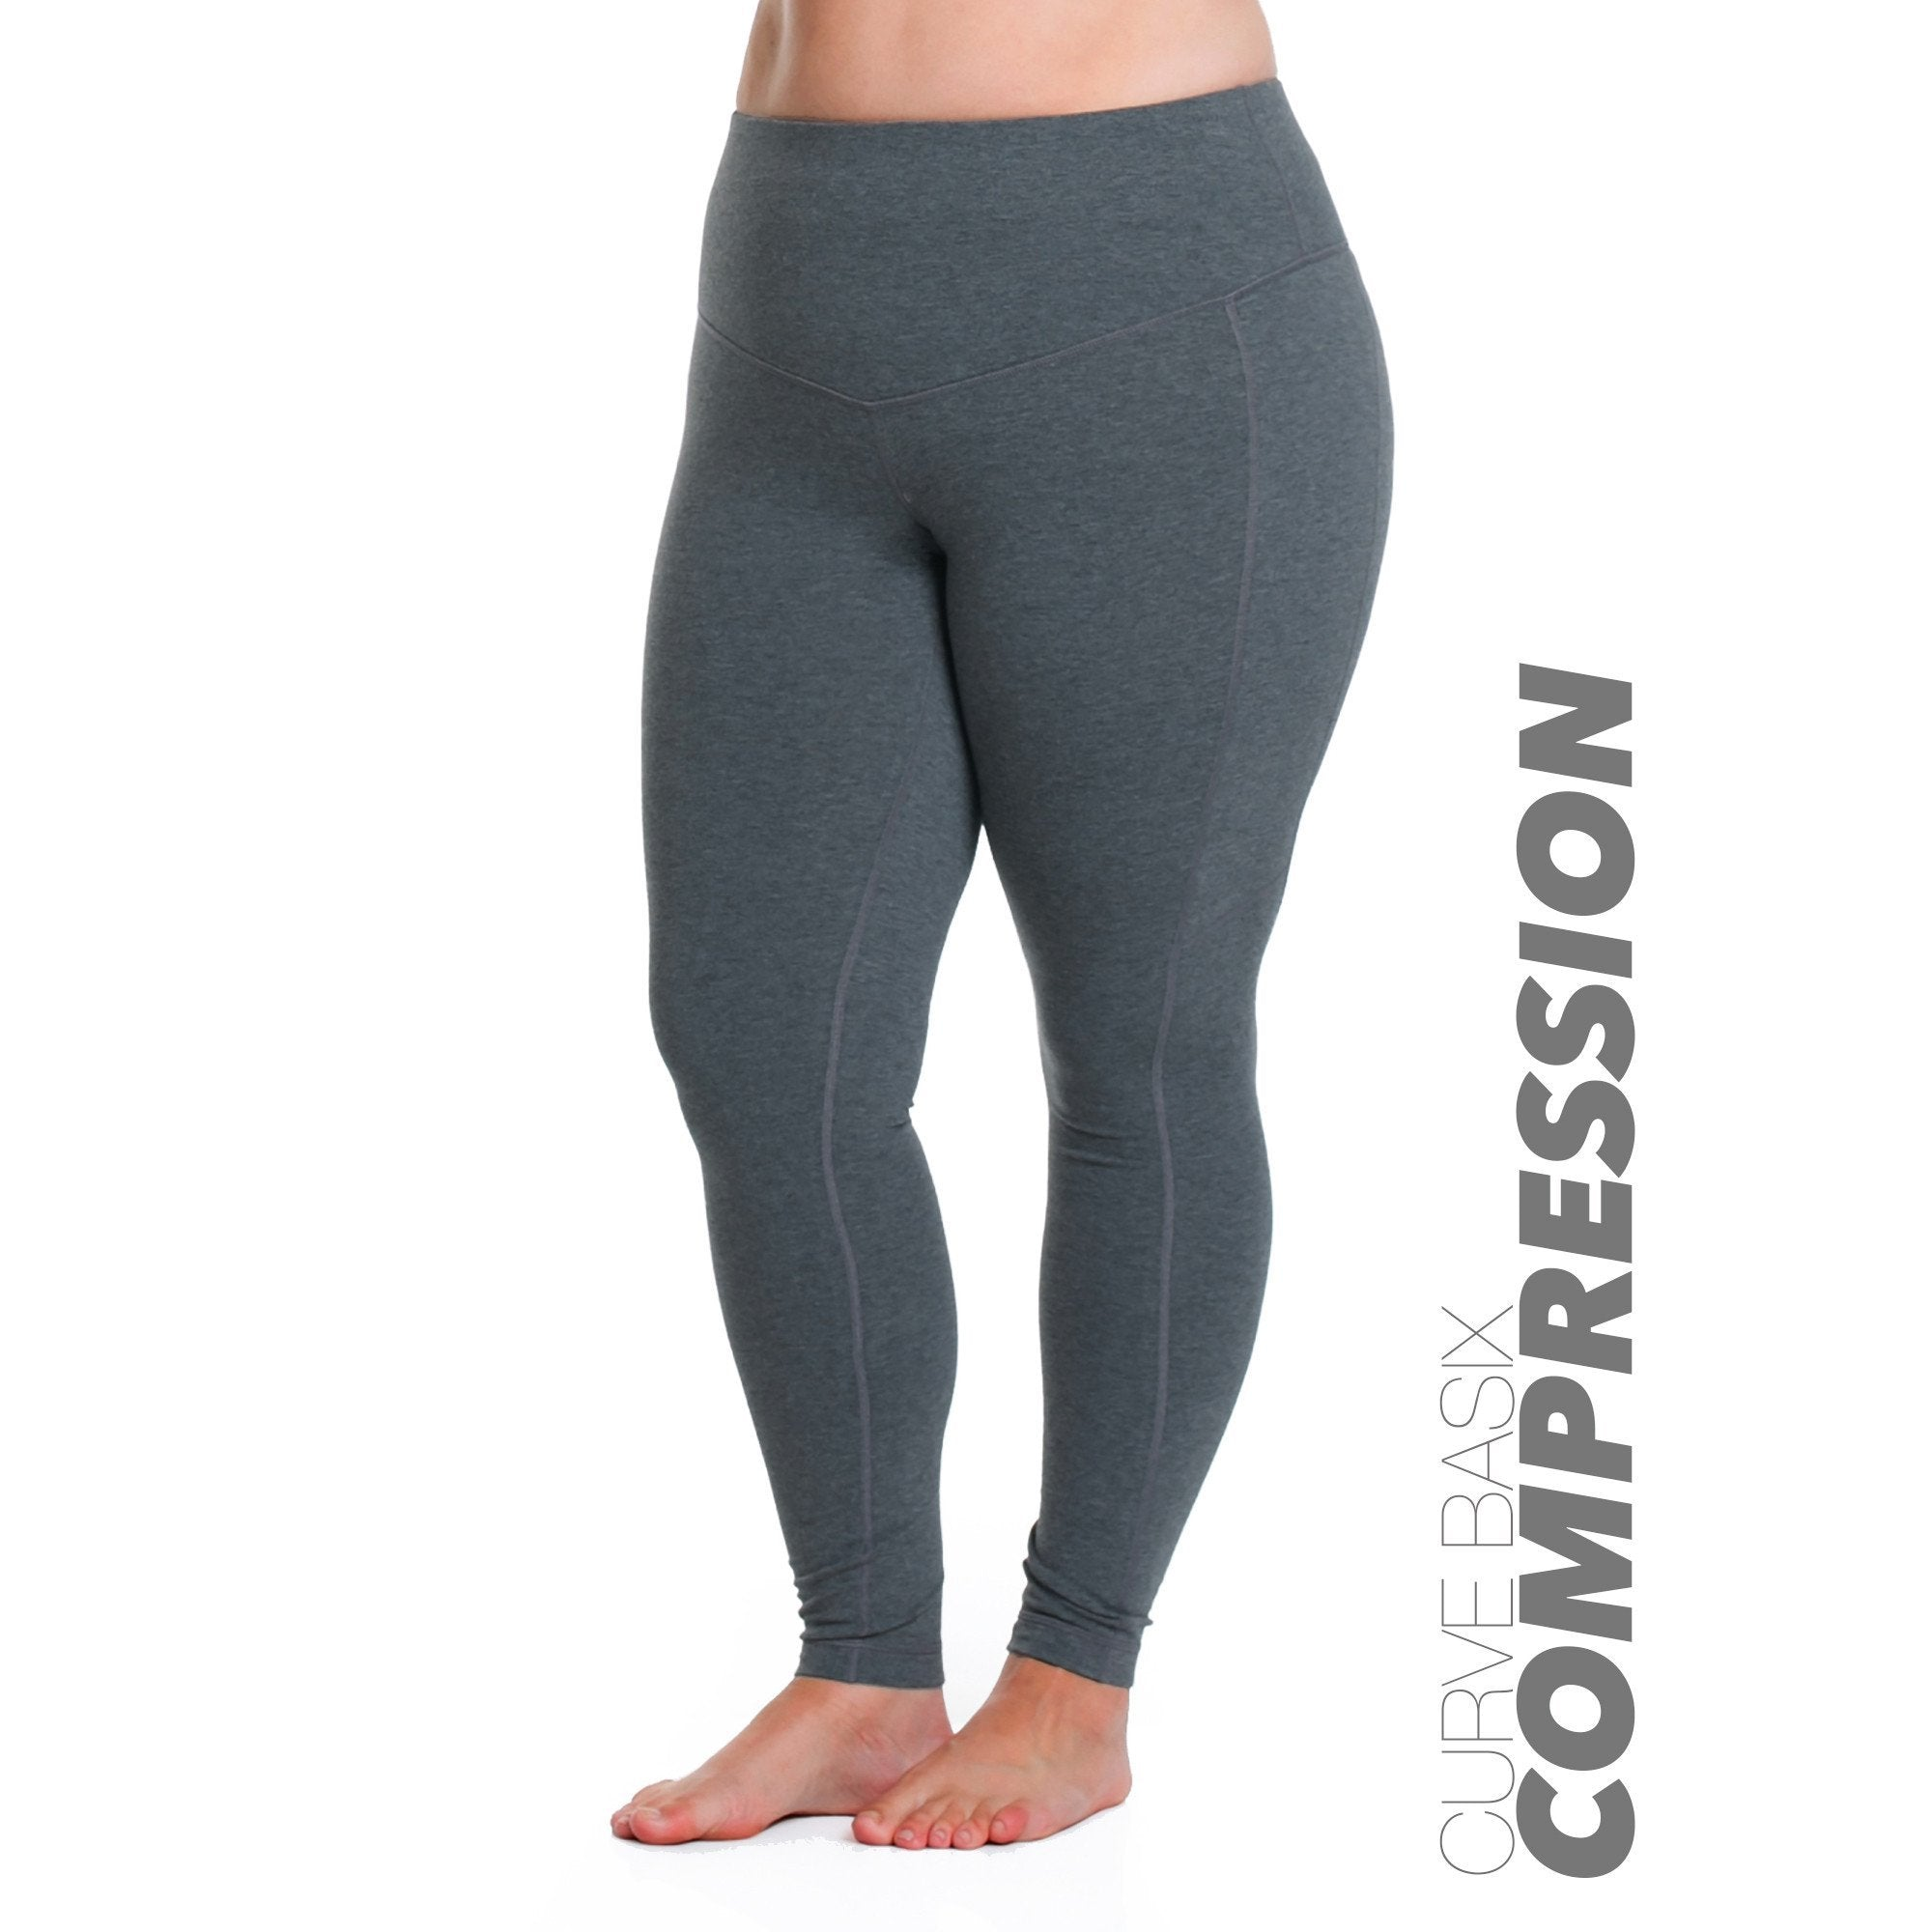 a595600c32215 Rainbeau Curves - Curve Basix Compression Legging - Plus Size ...